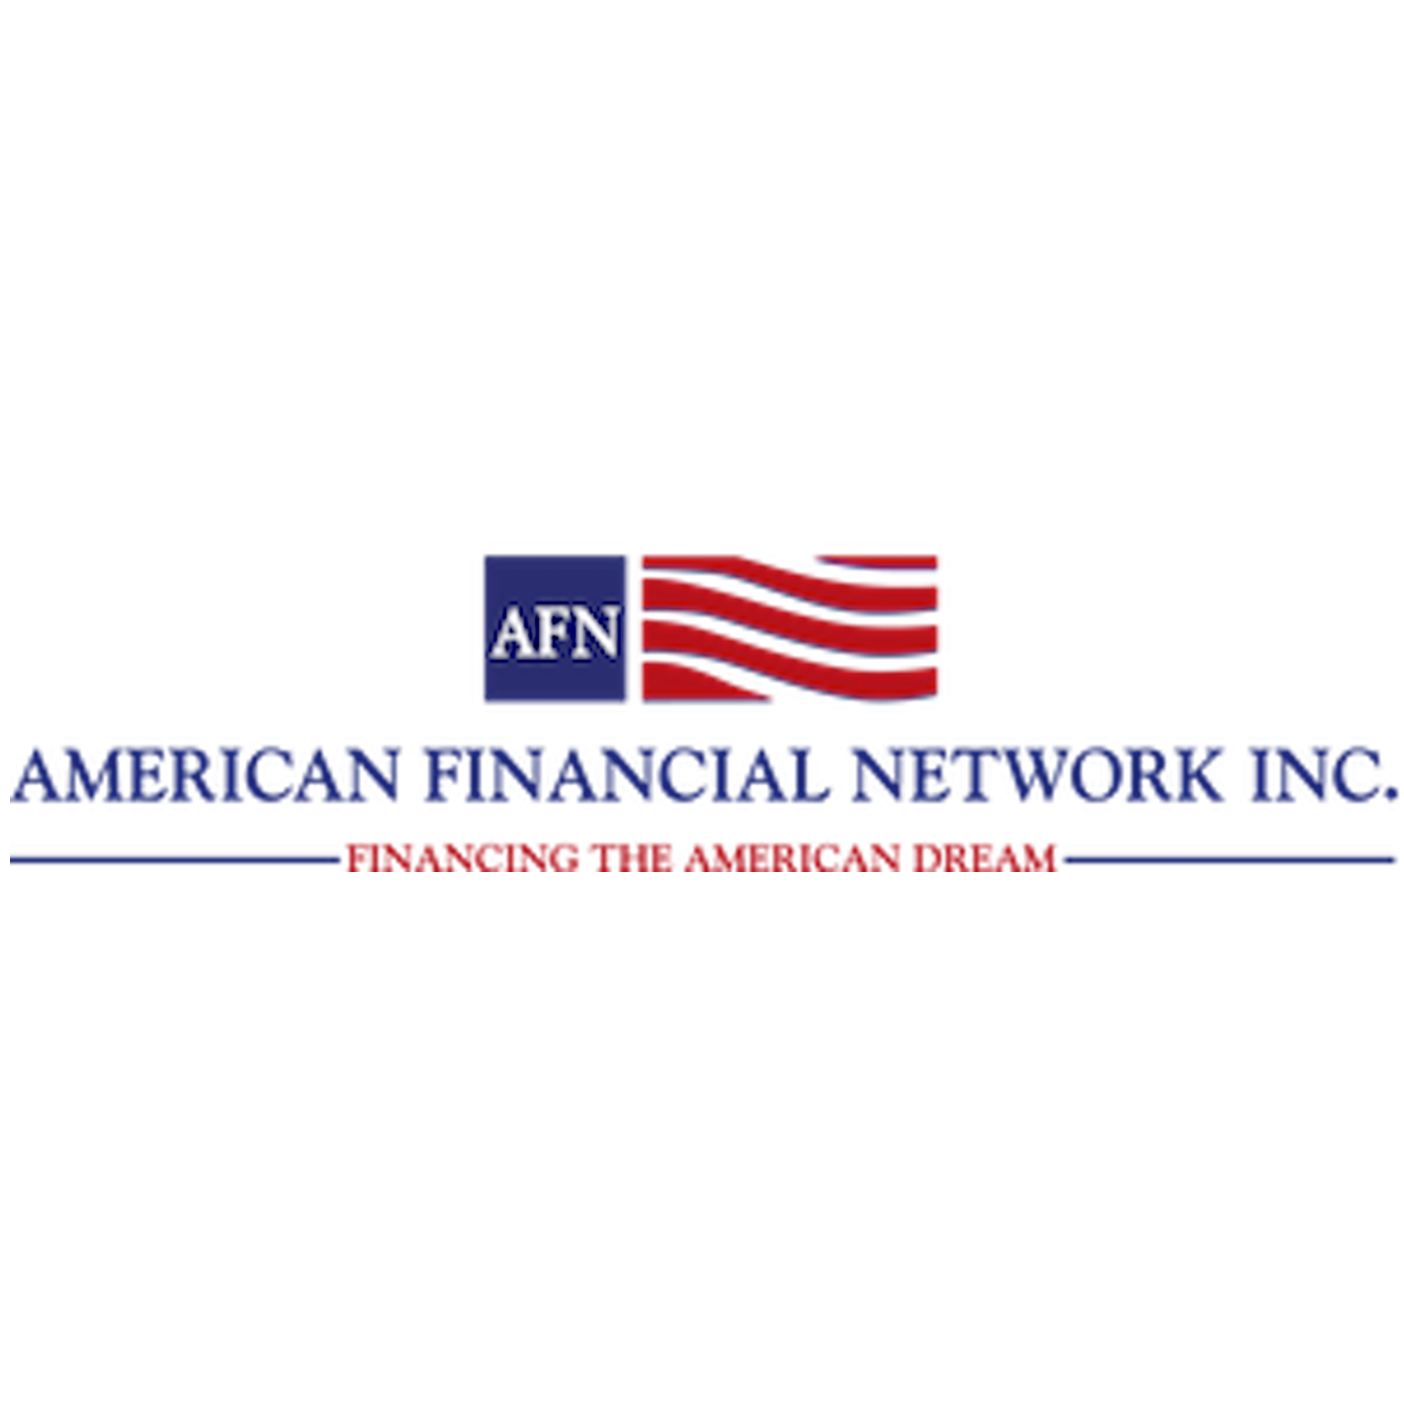 Andrew Mente | American Financial Network Inc.